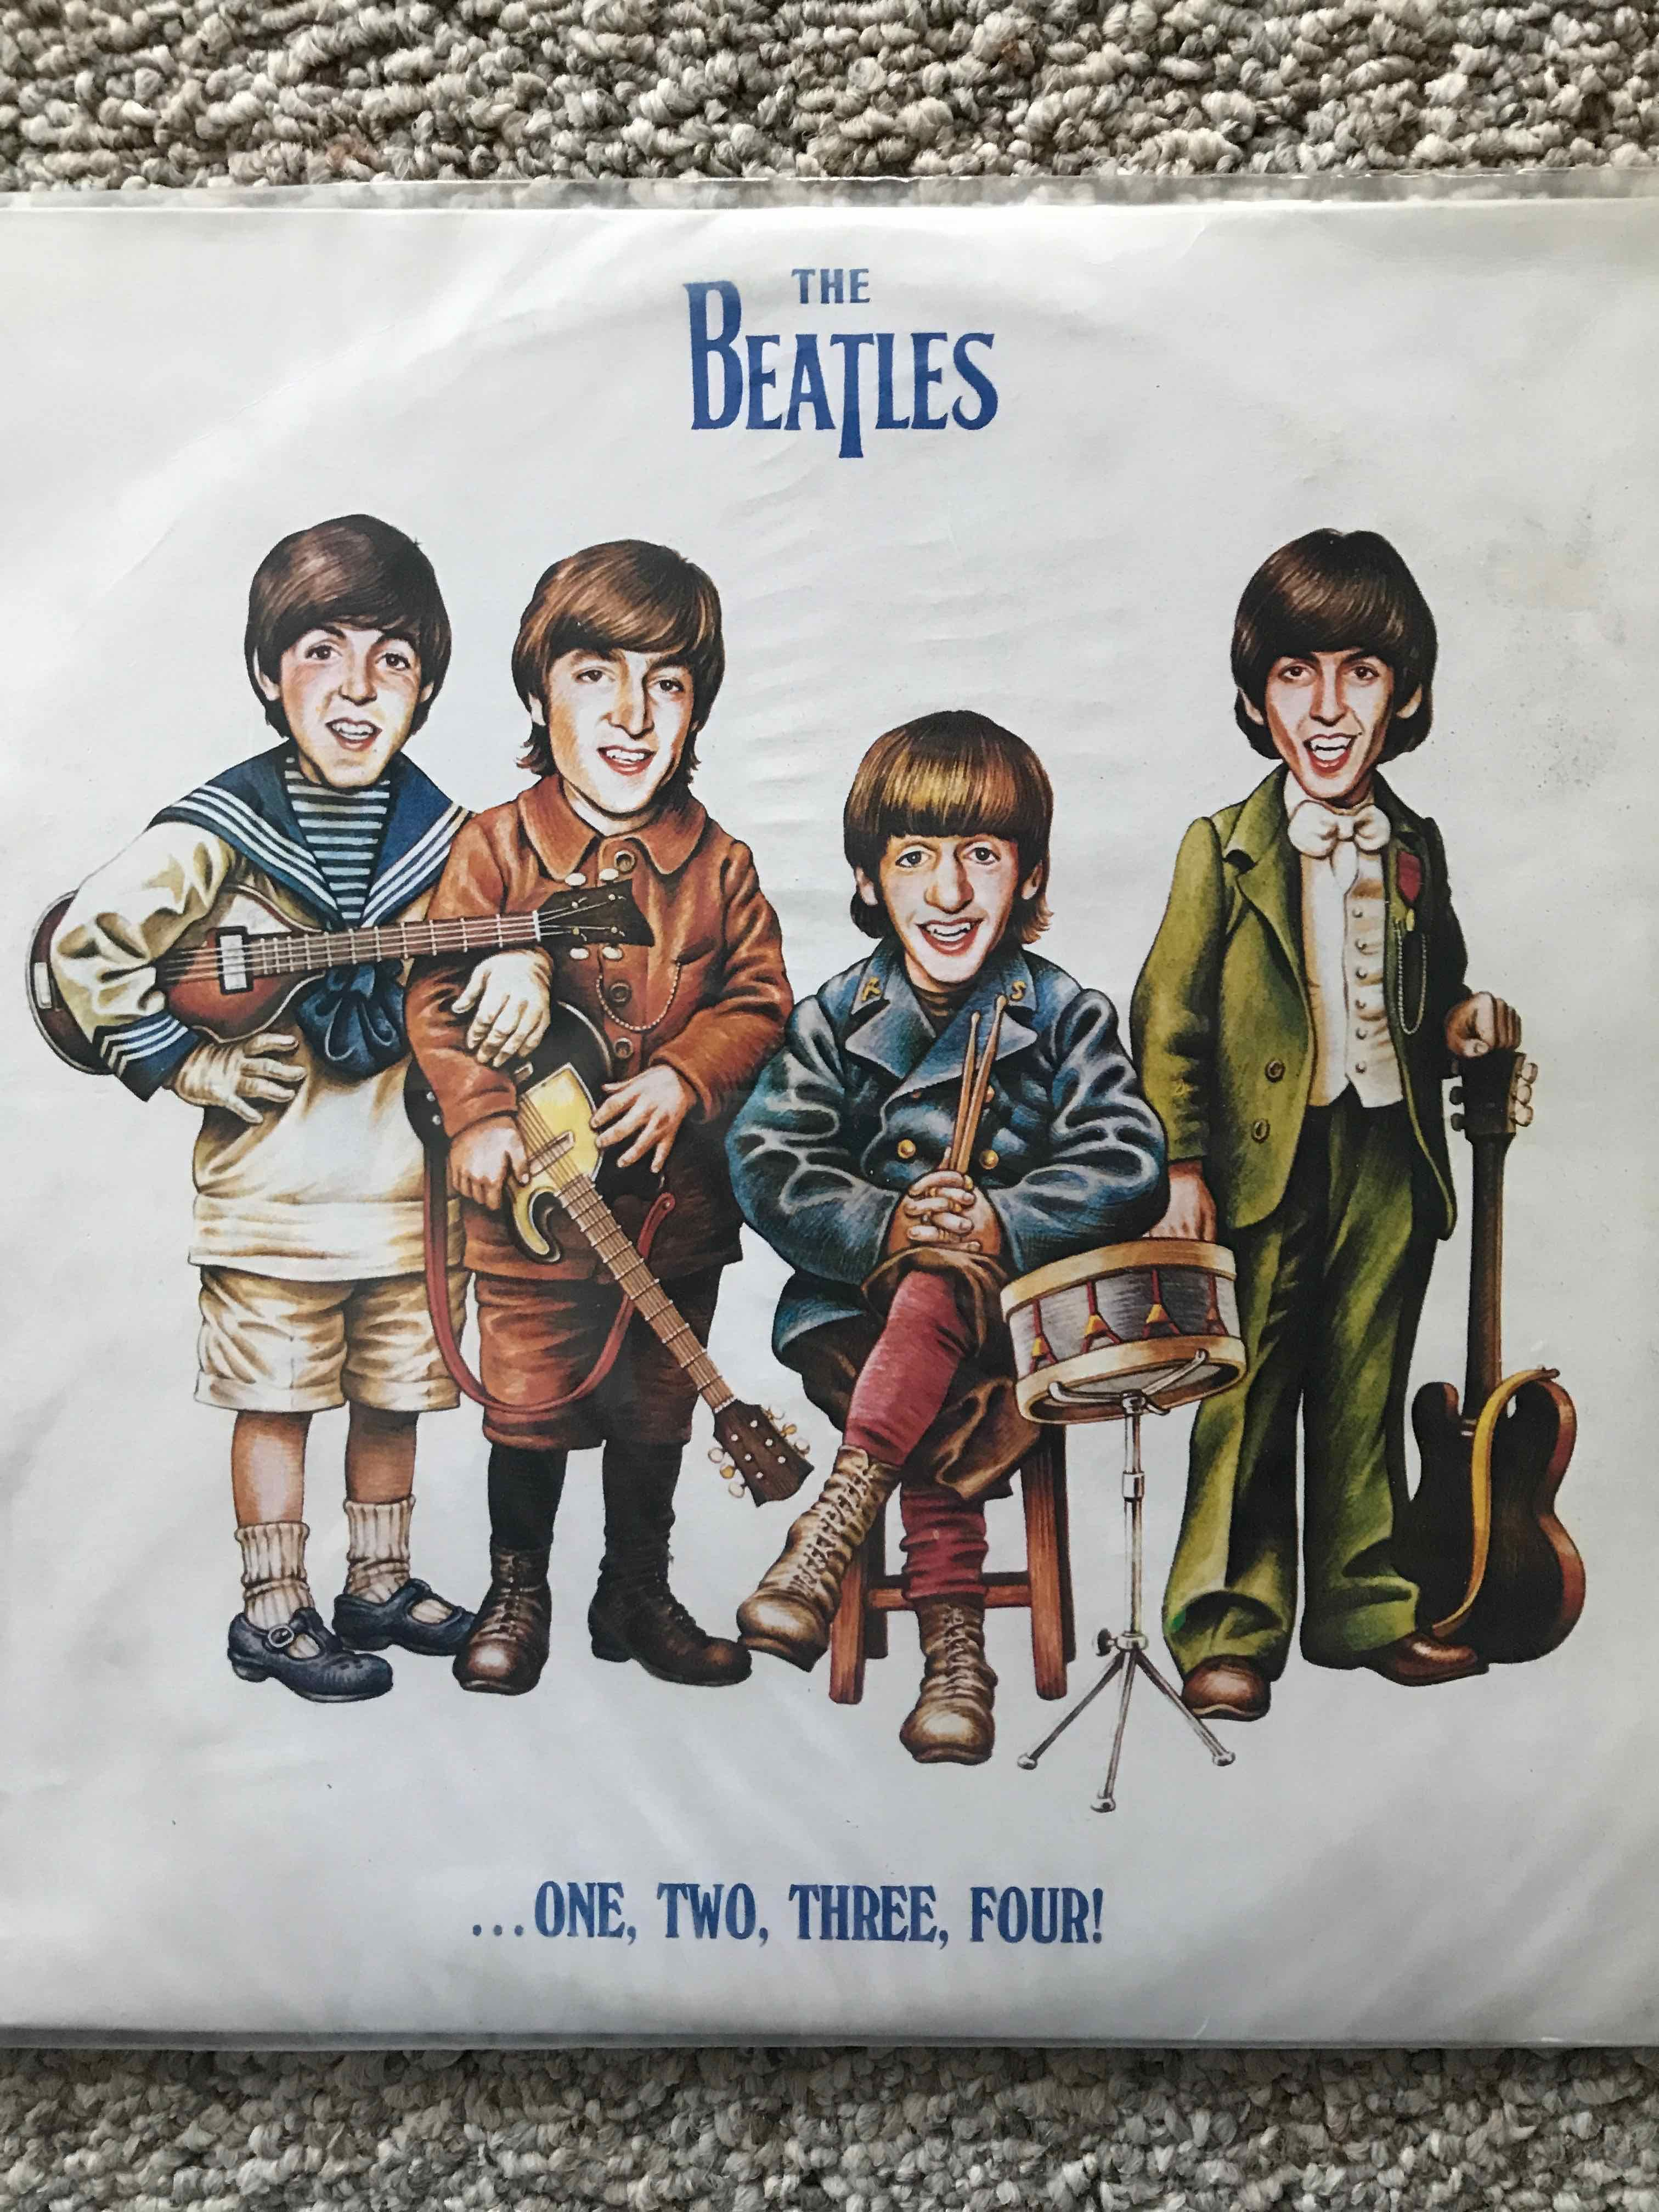 A Beatle bootleg album entitled One, Two, Three Four! | Beatles in